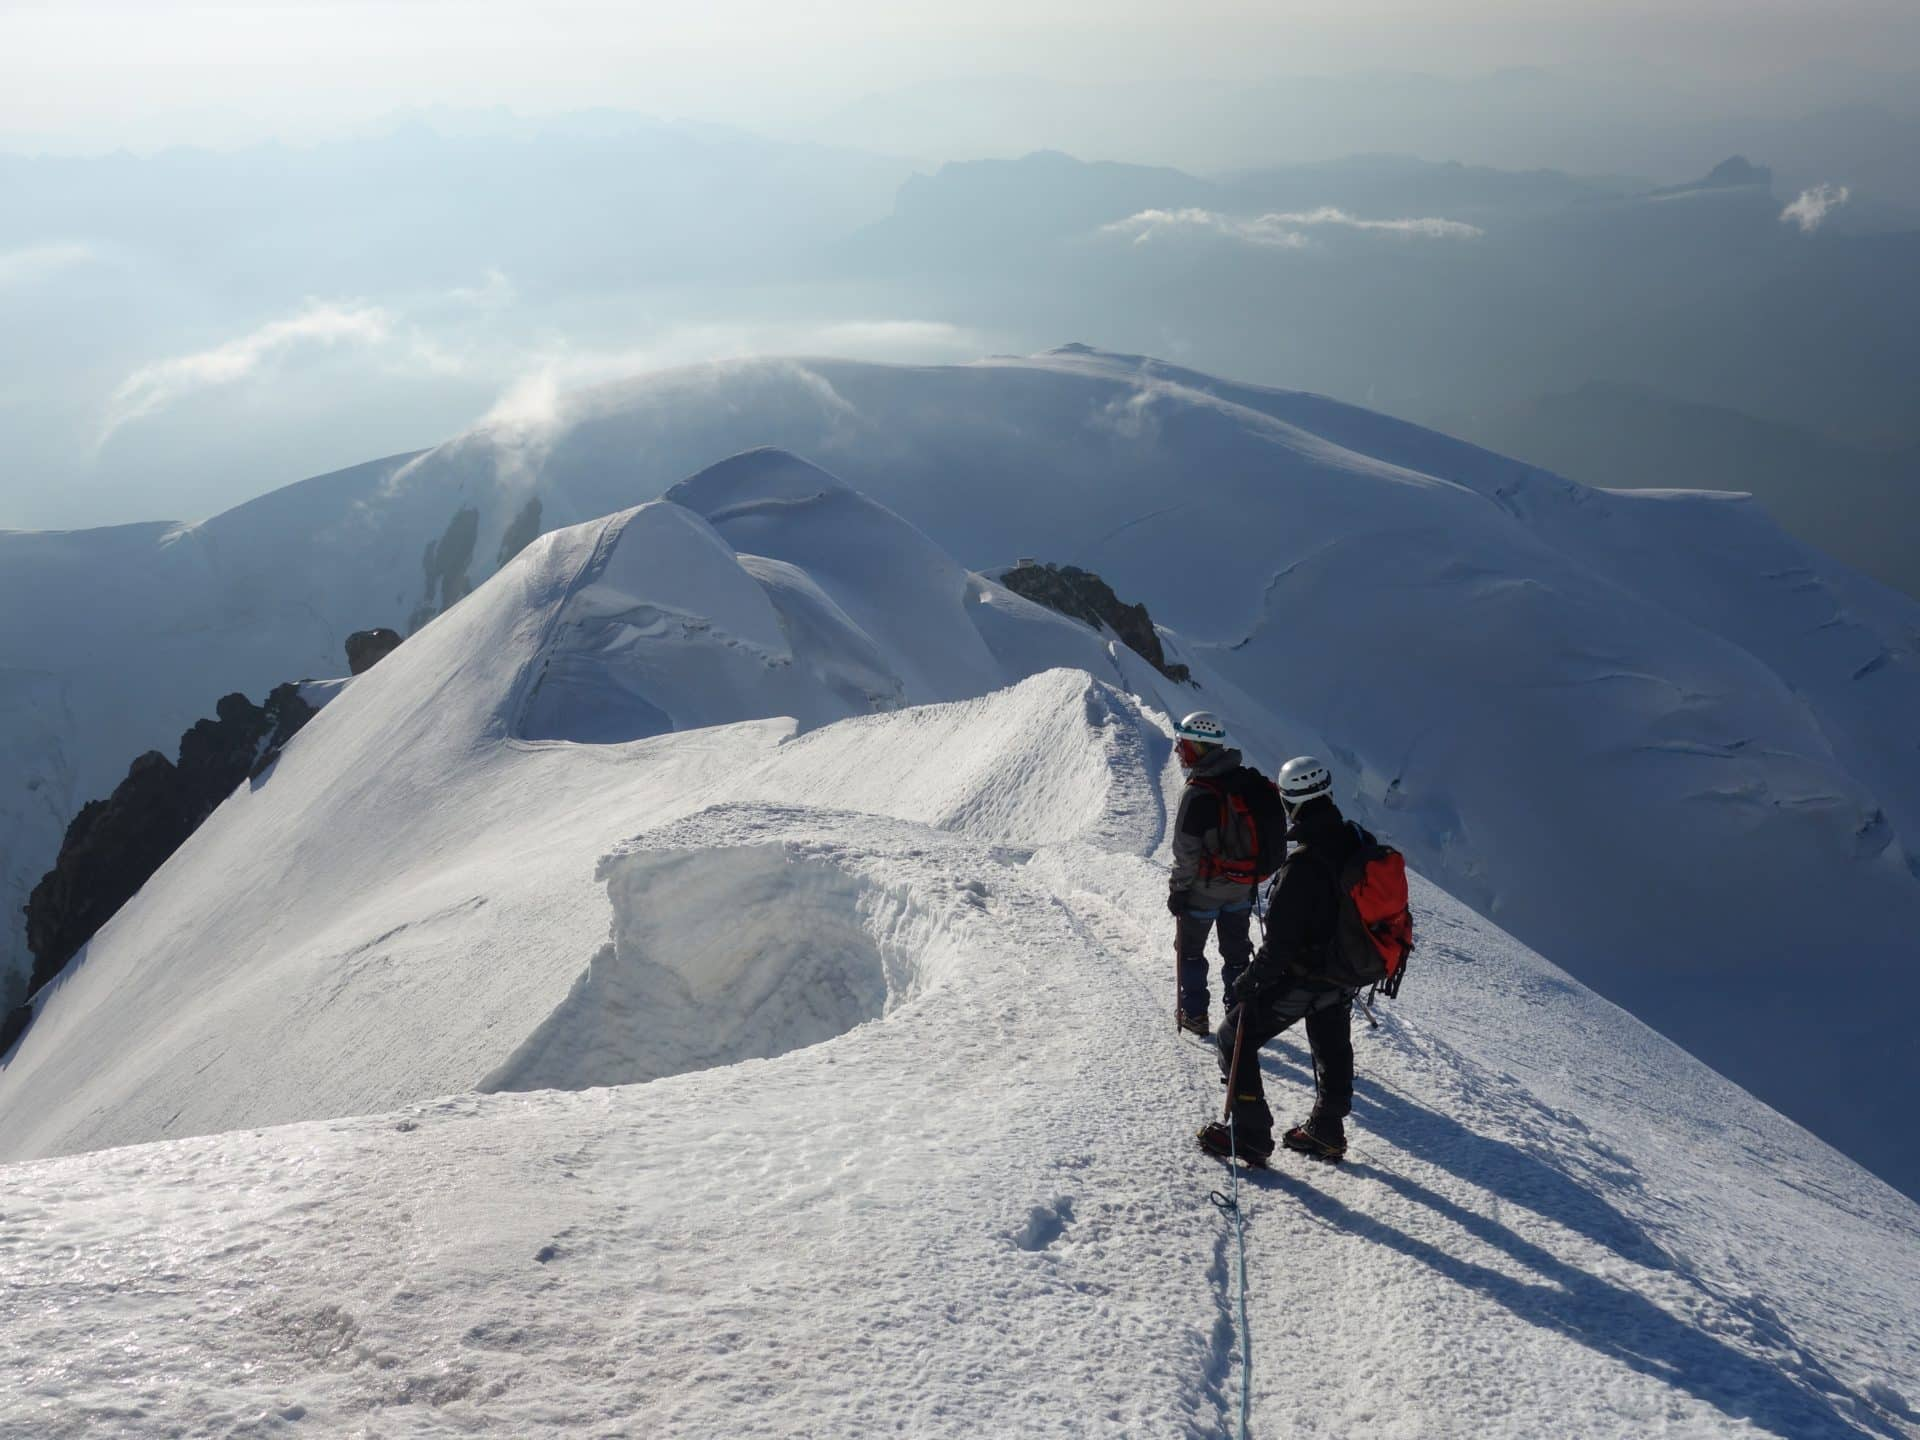 Mont Blanc 6-day climbing course